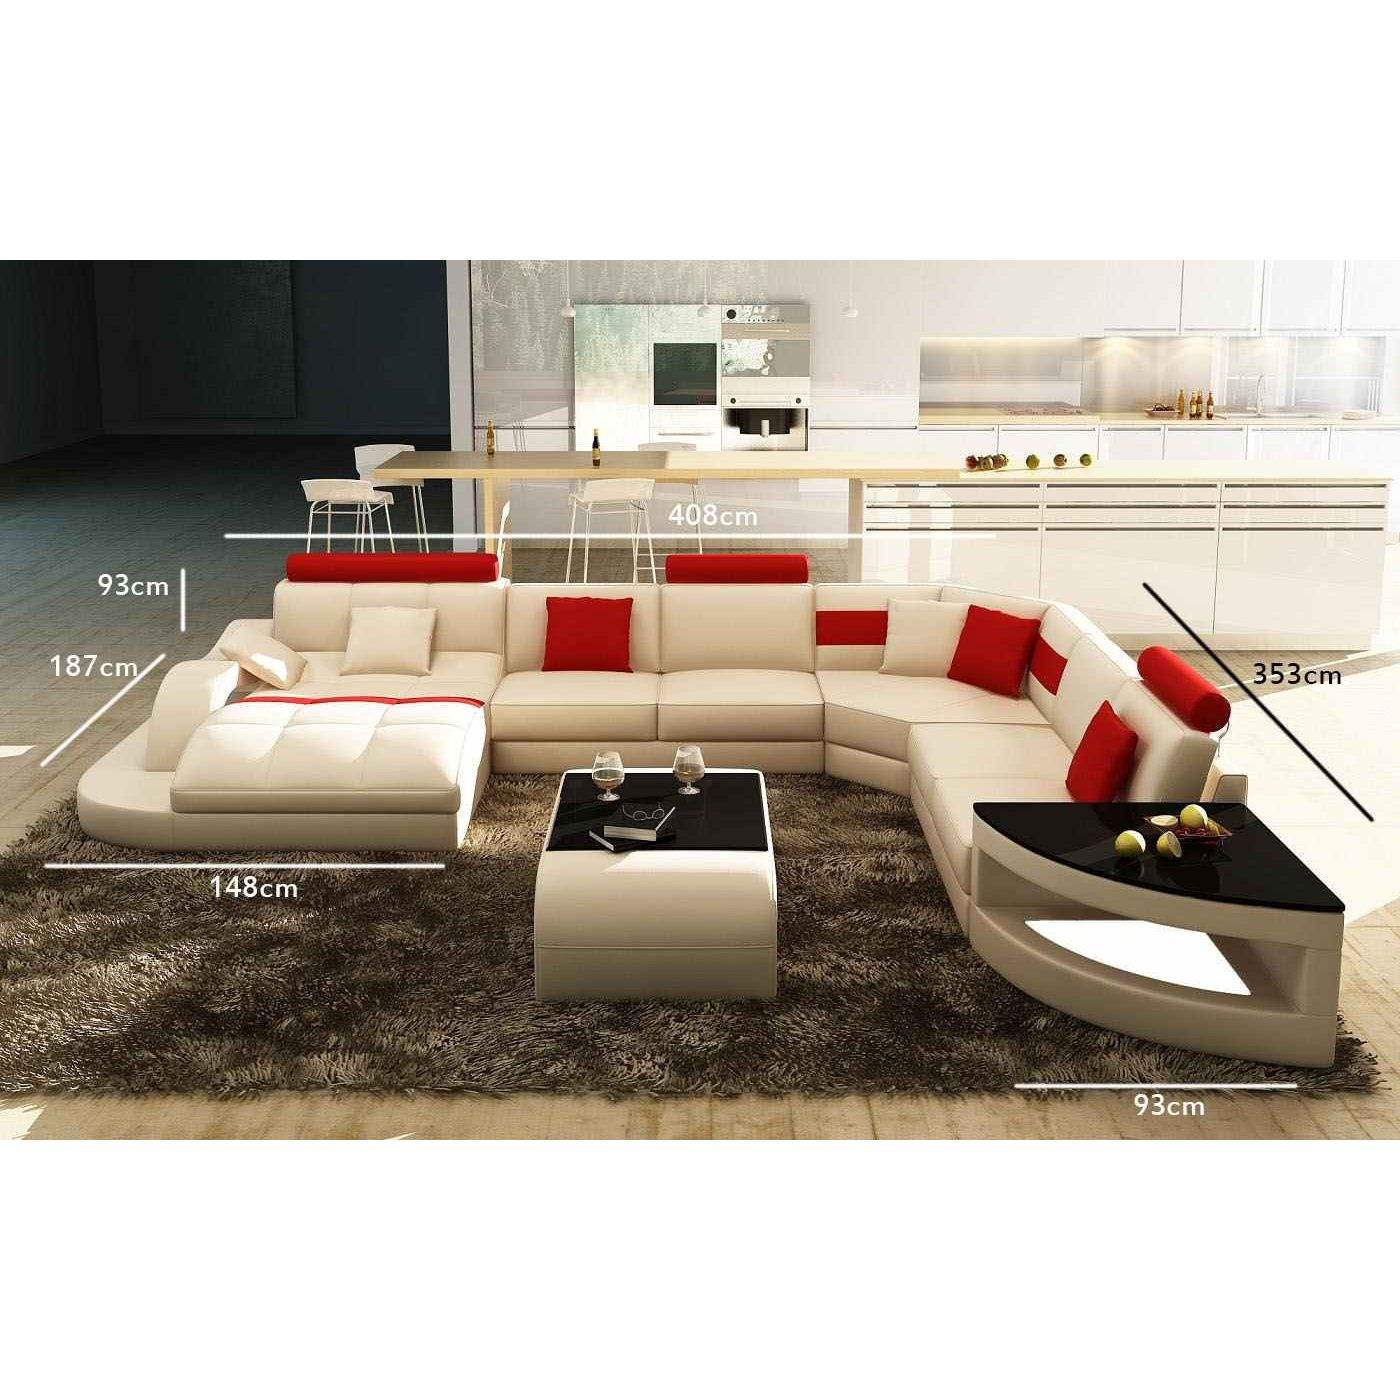 Deco in paris canape d angle design panoramique blanc et rouge istanbul pan - Canape en cuir design ...